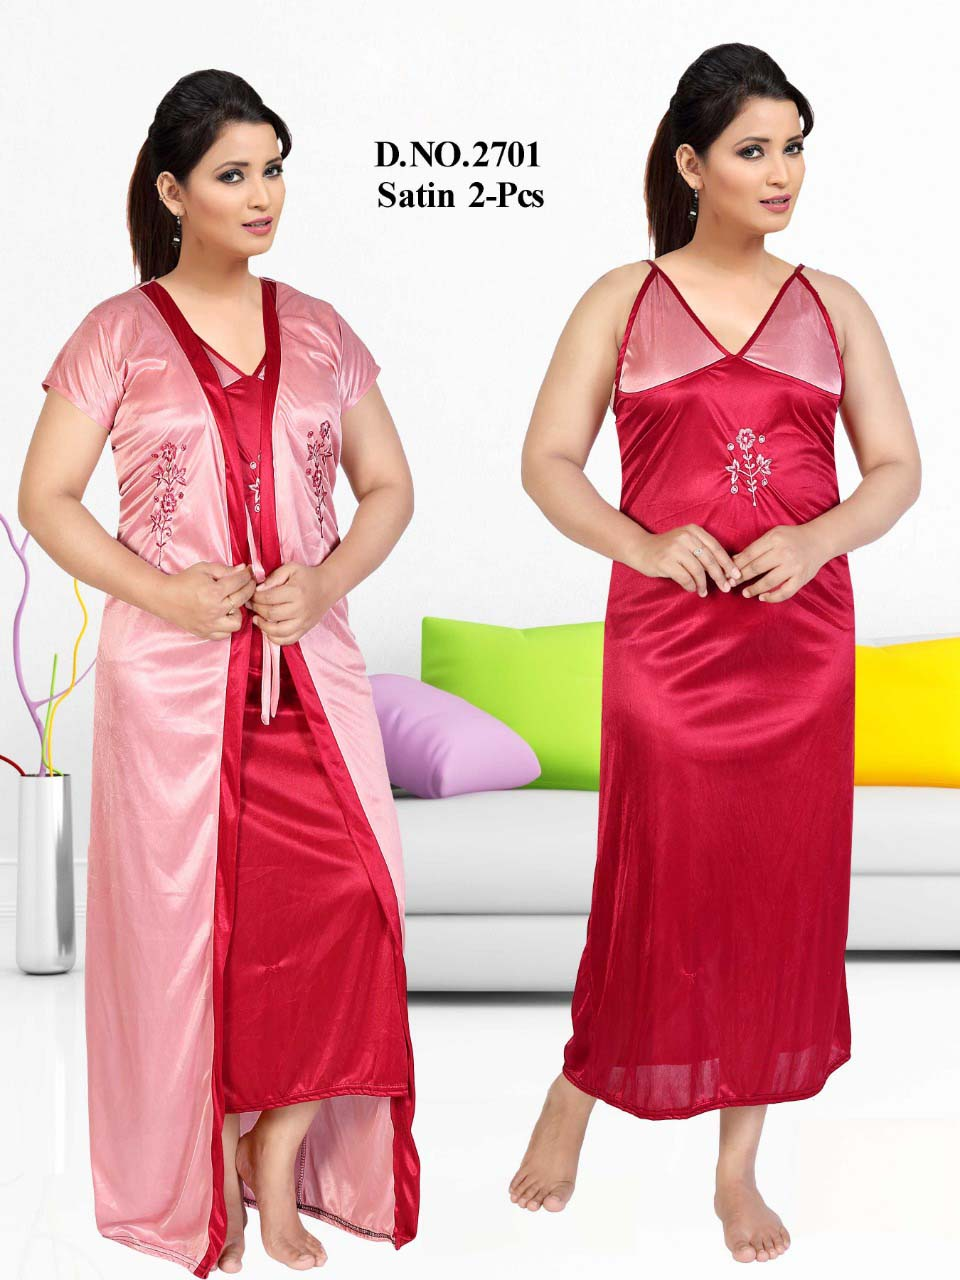 SATIN TWO PIECE NIGTHY-MAHROON-KC JUNE 2701